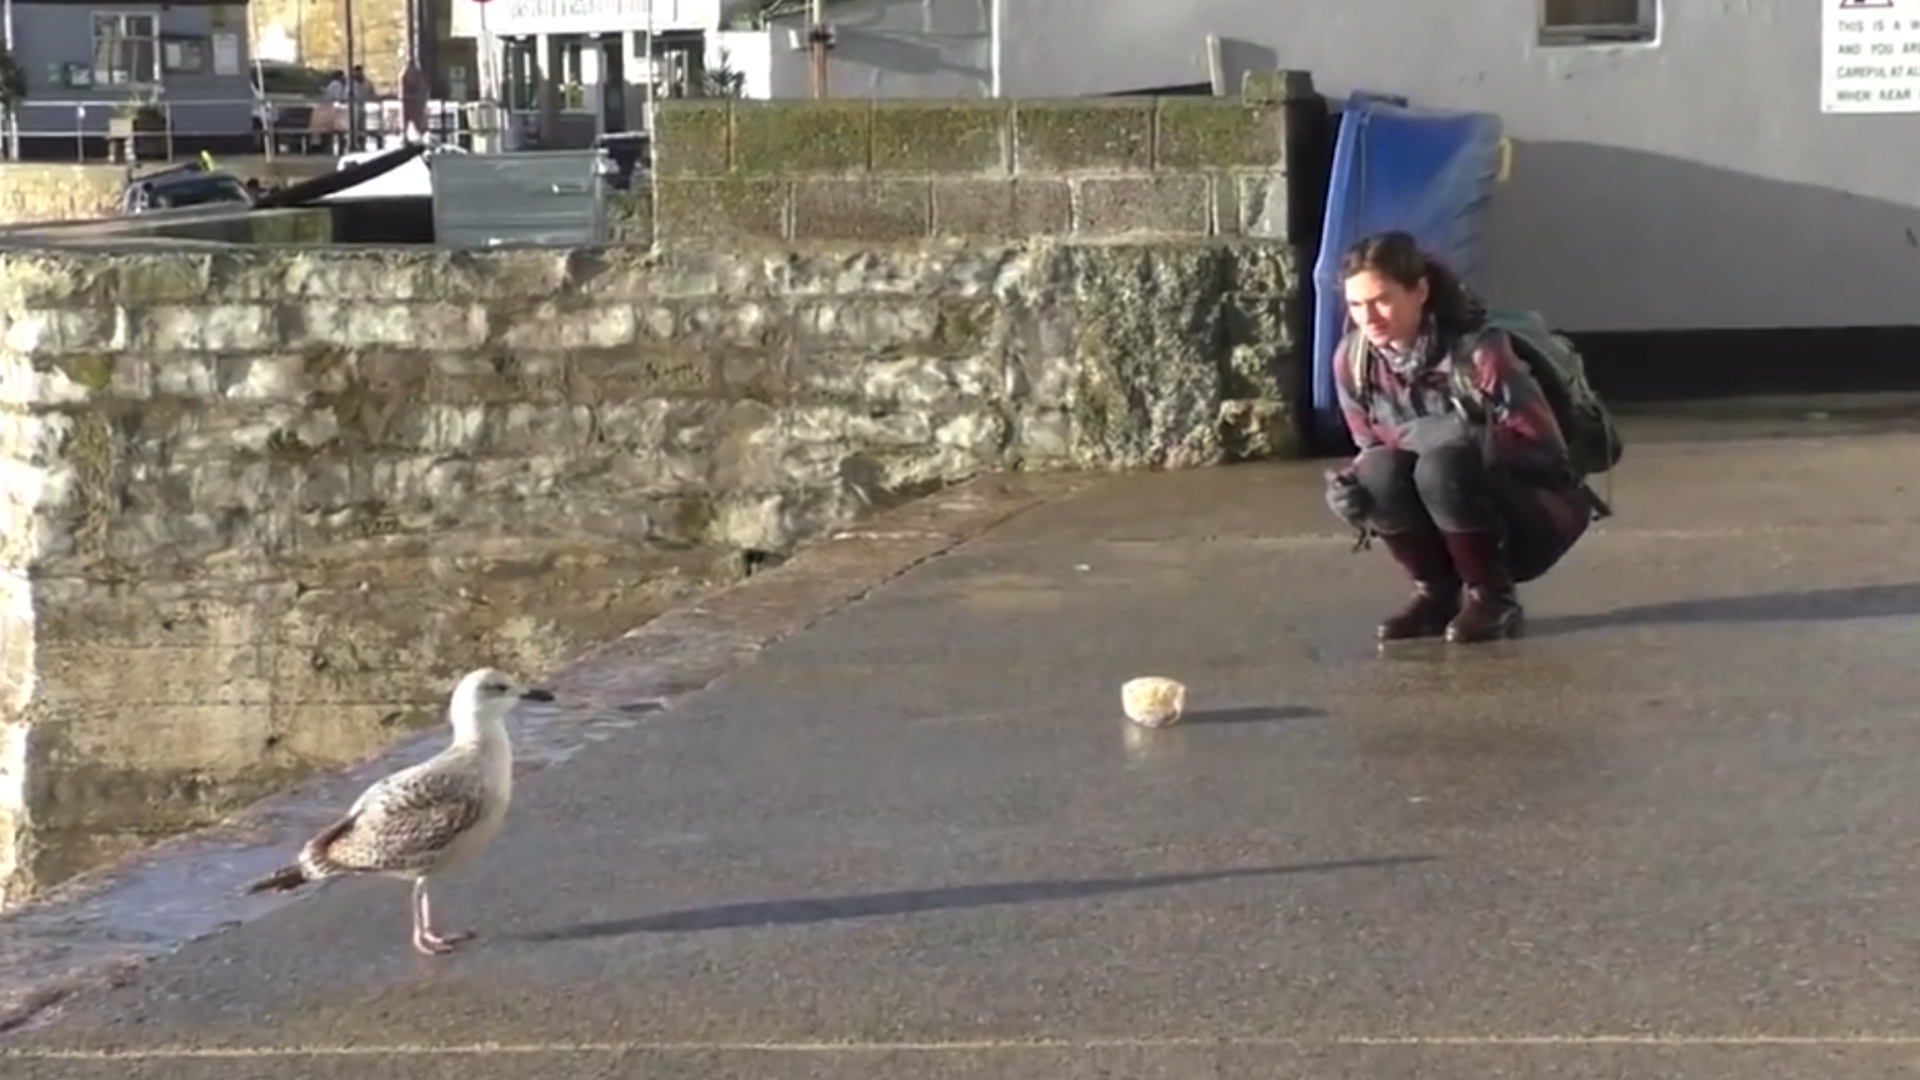 University tests theory seagulls don't pinch food when you stare at them